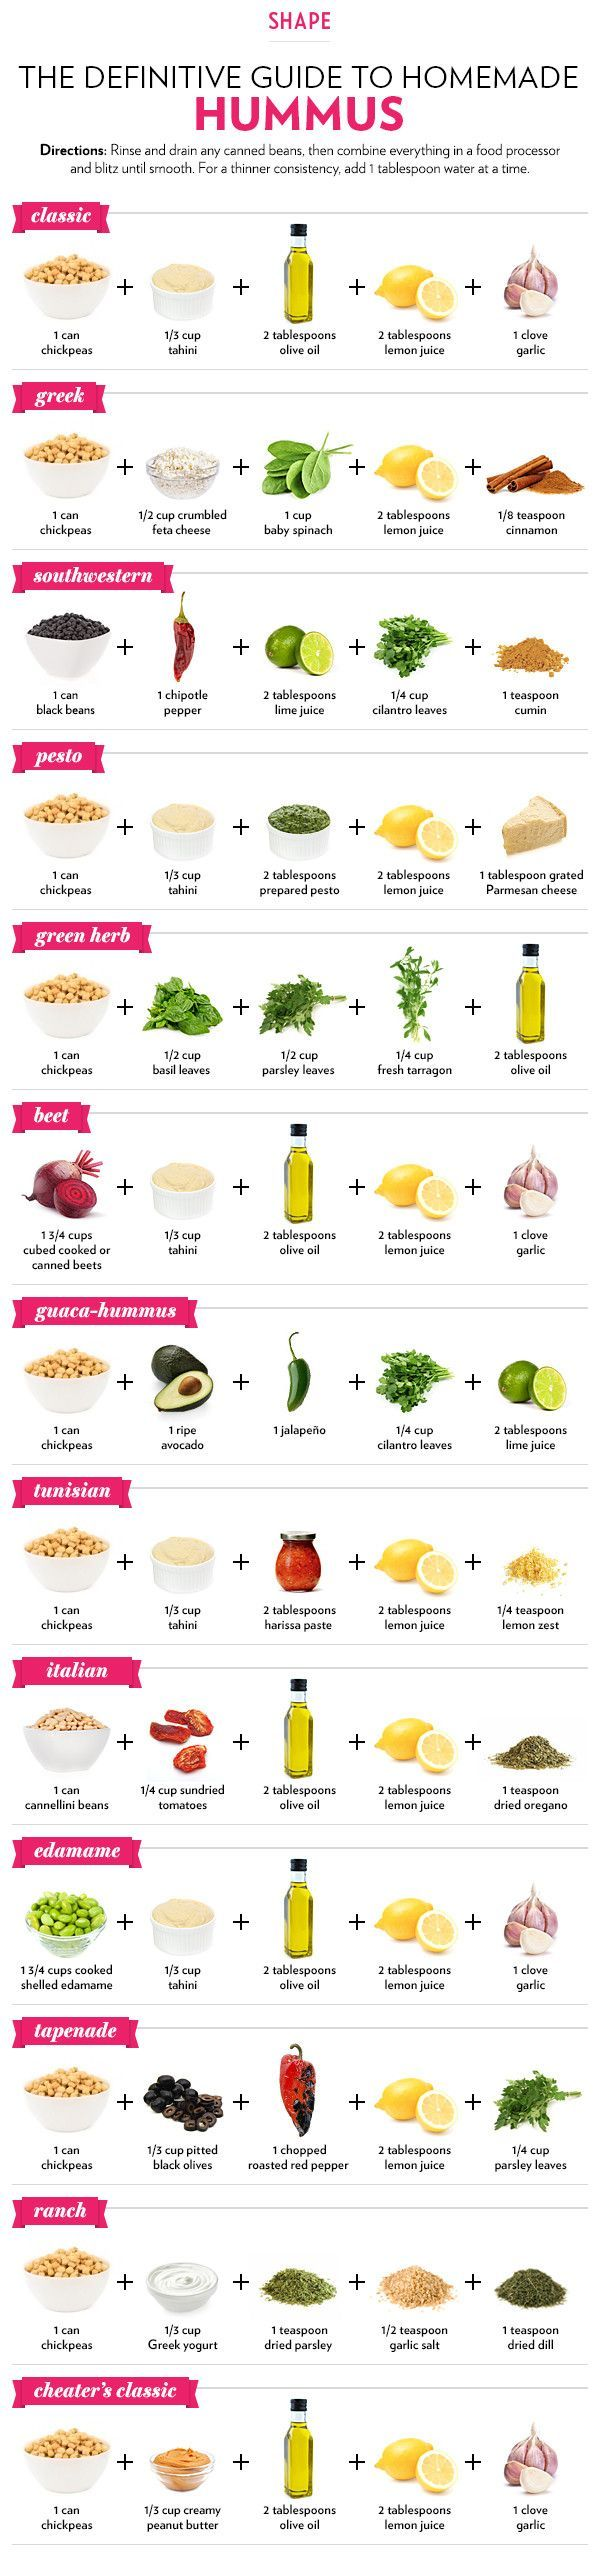 hummus_chart | 13 Simple Ways to Make Incredible Hummus